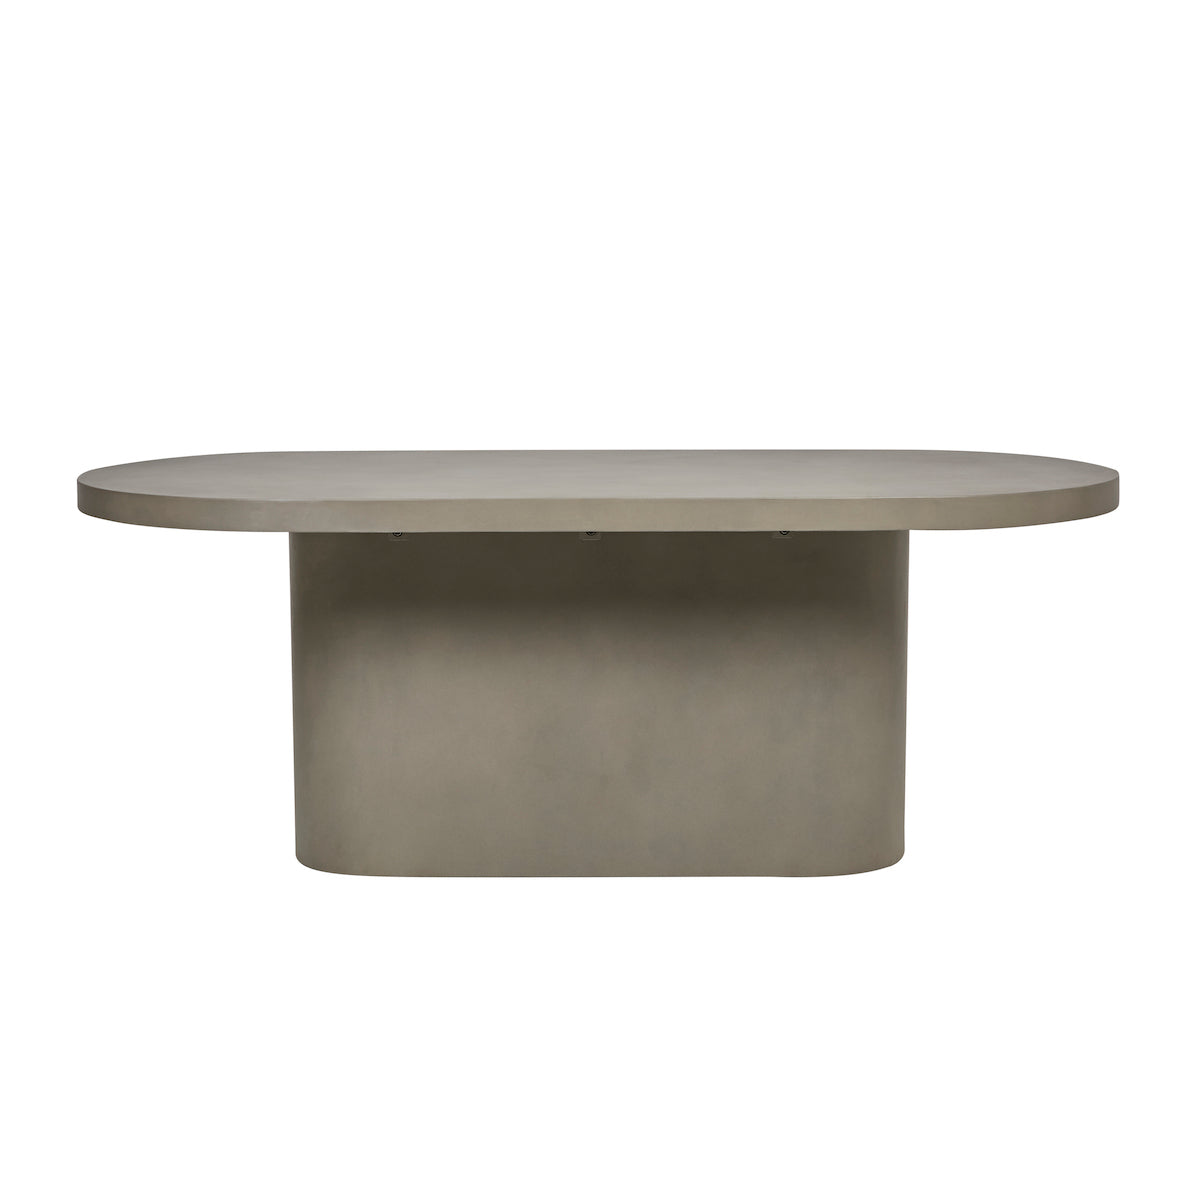 Ossa Oval Patio Dining Table | Grey